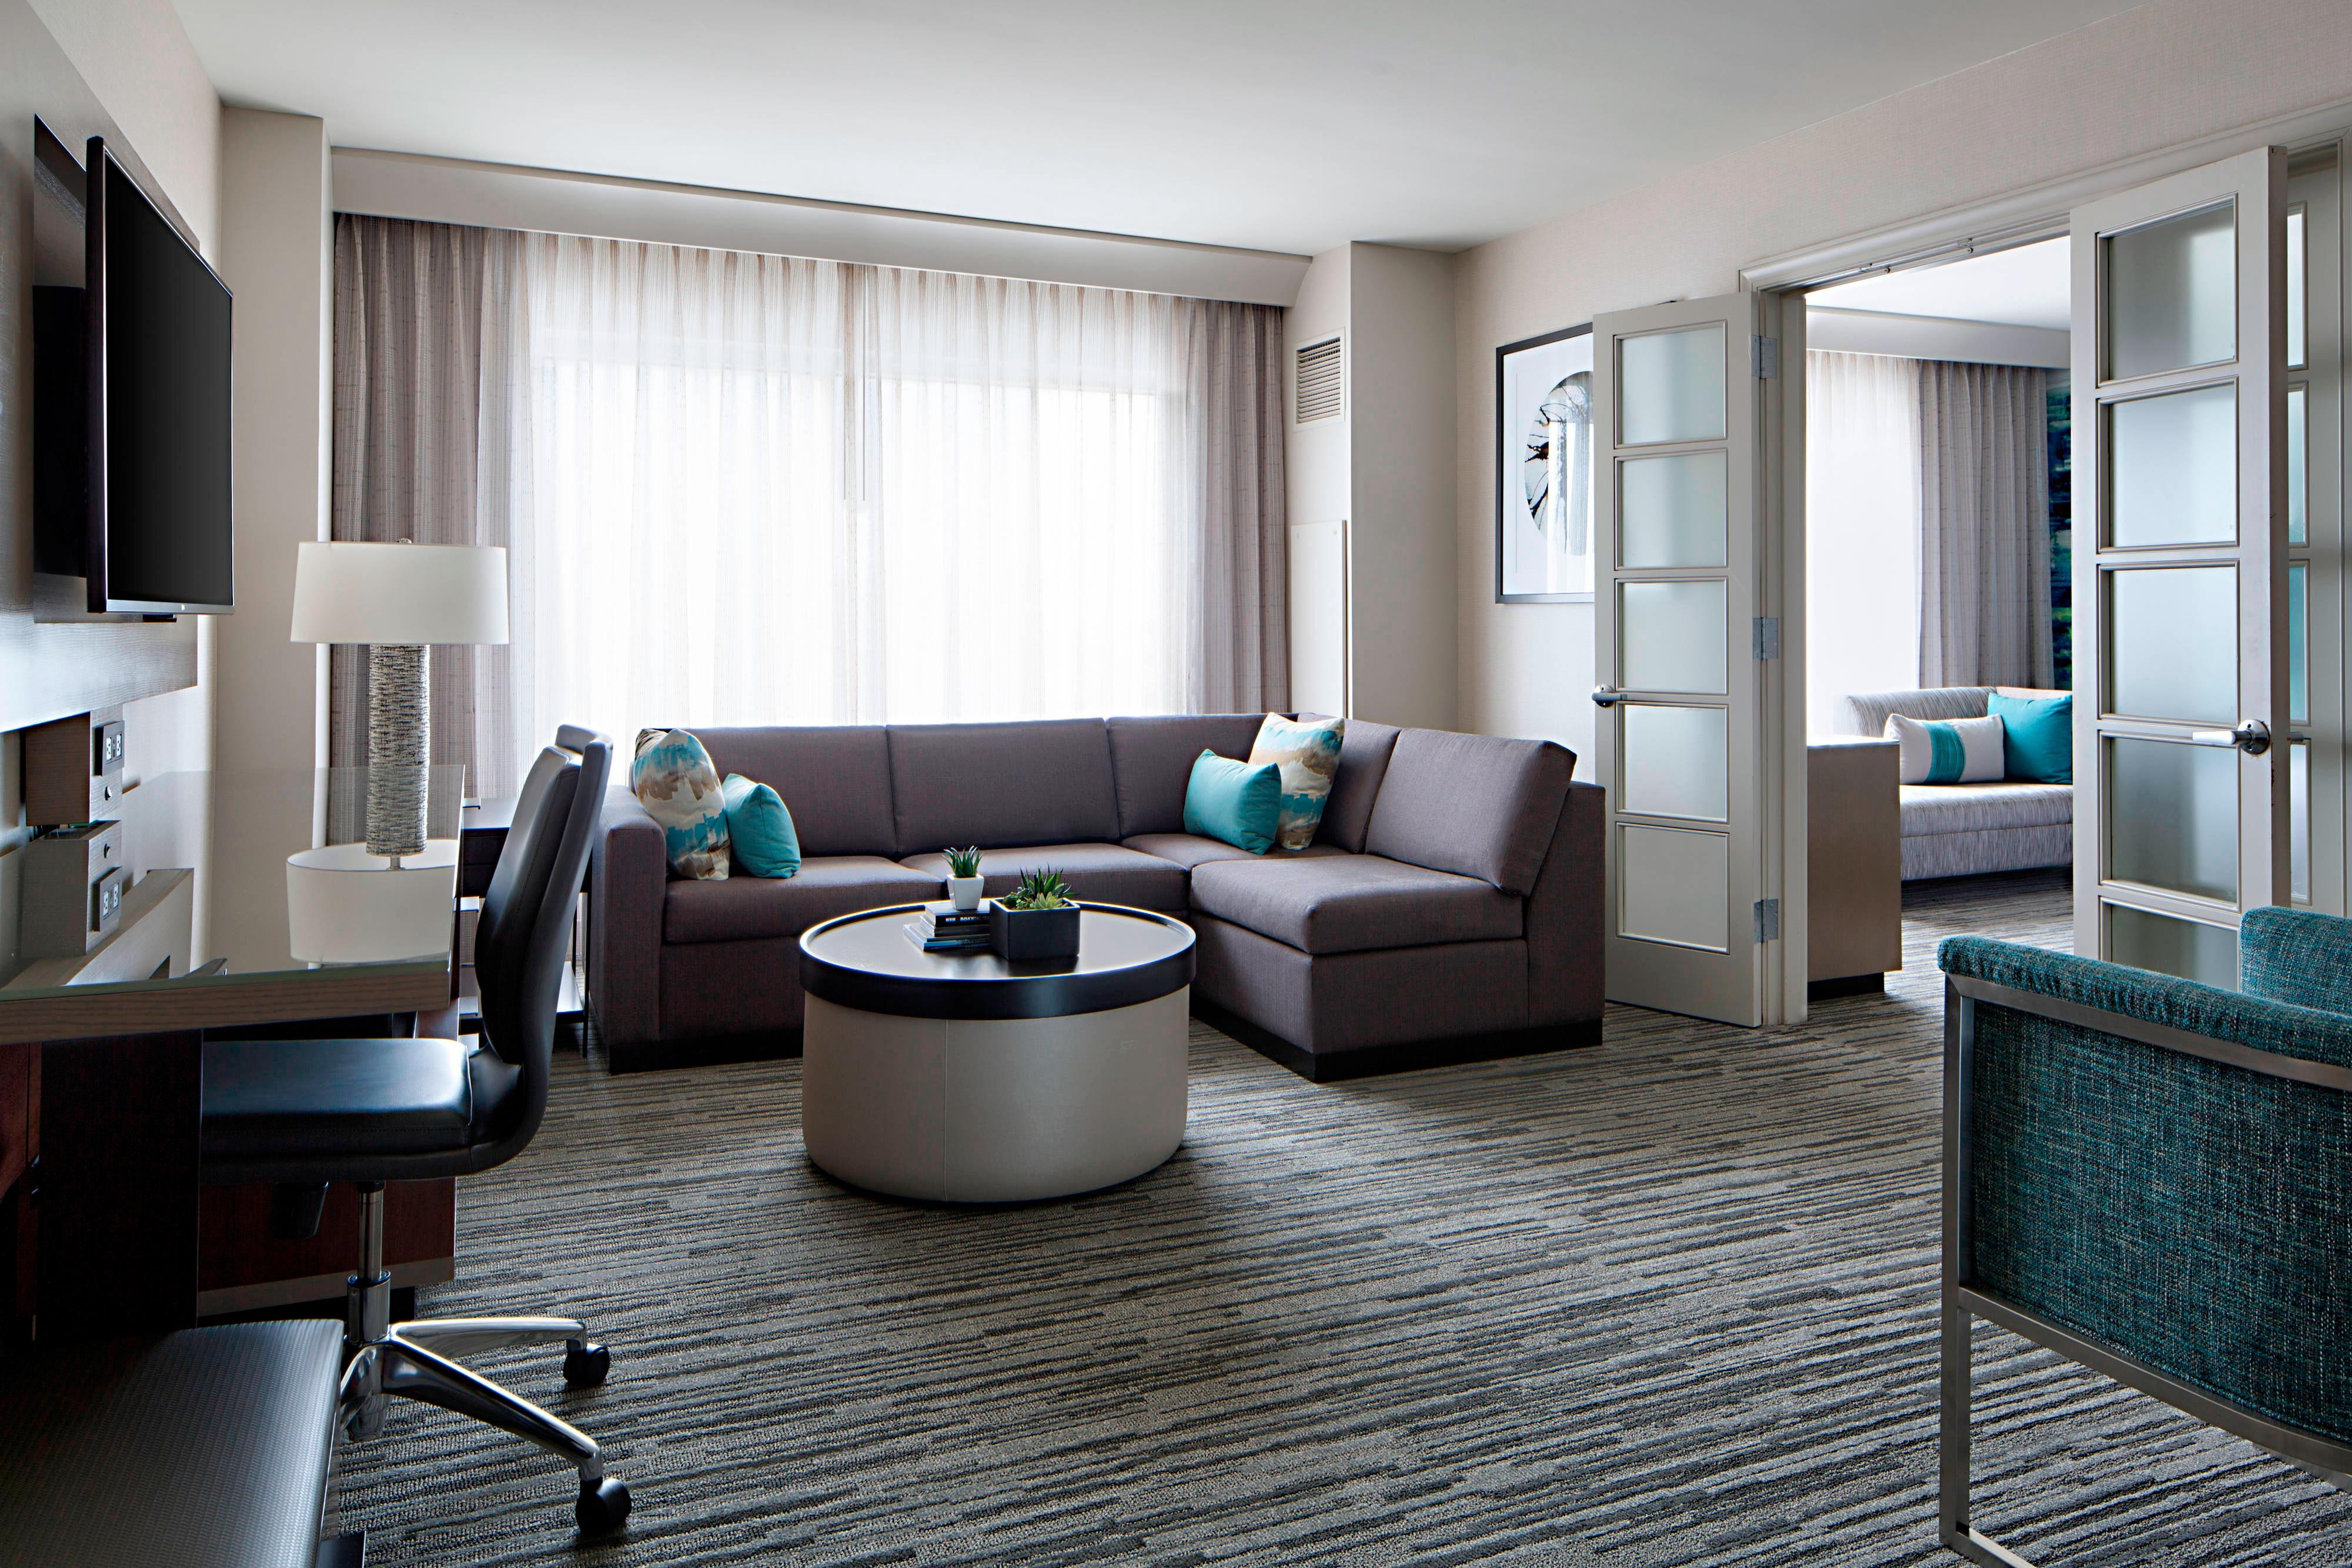 Hotel Rooms And Suites In Indianapolis Indiana Indianapolis Marriot Downtown